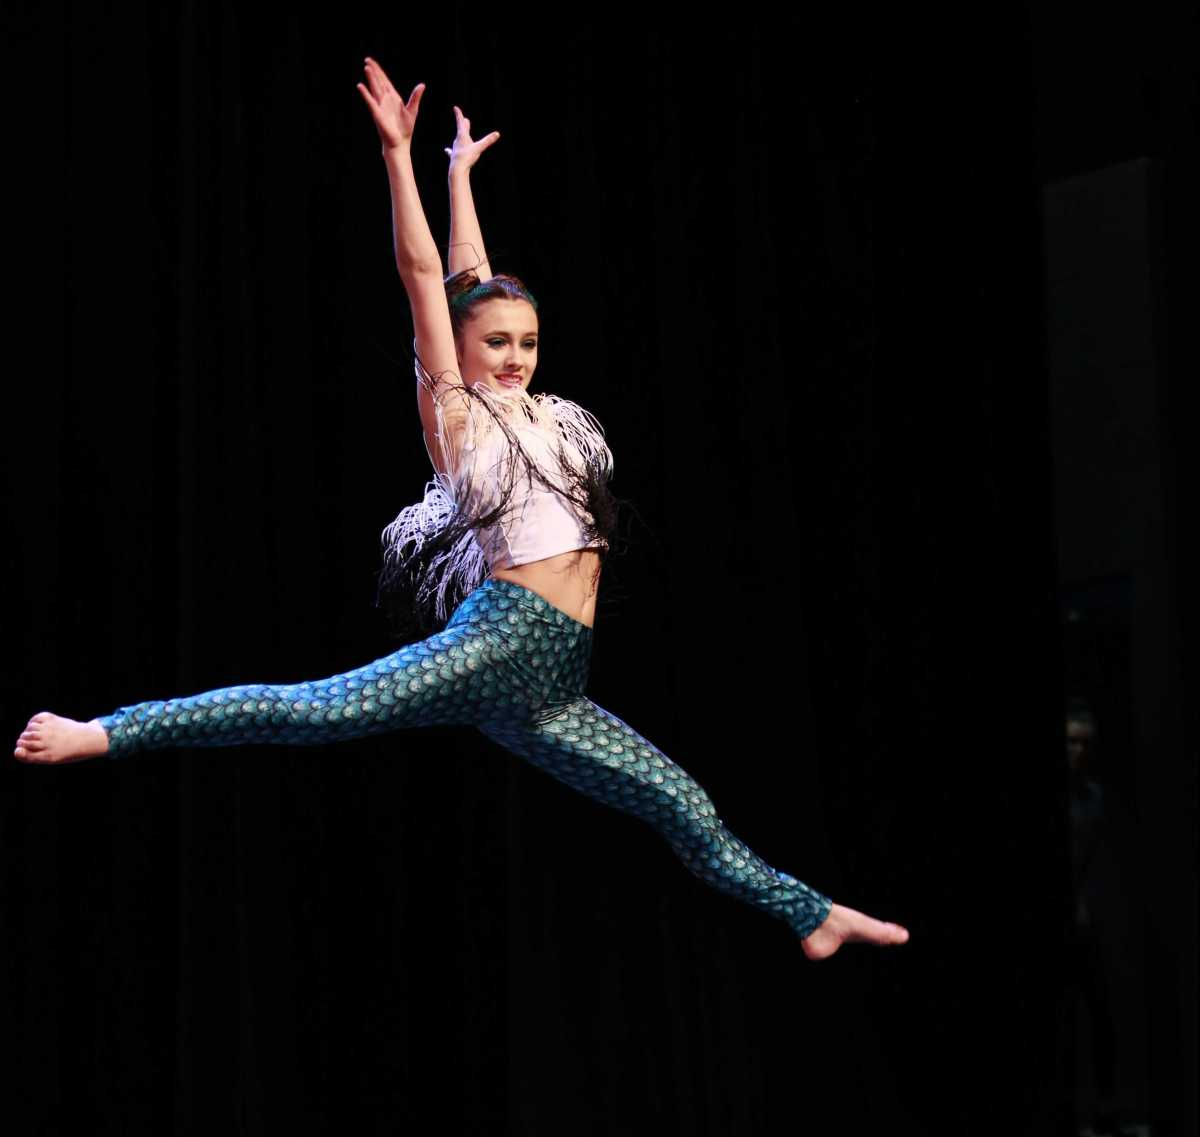 Dancers balance academic and artistic responsibilities